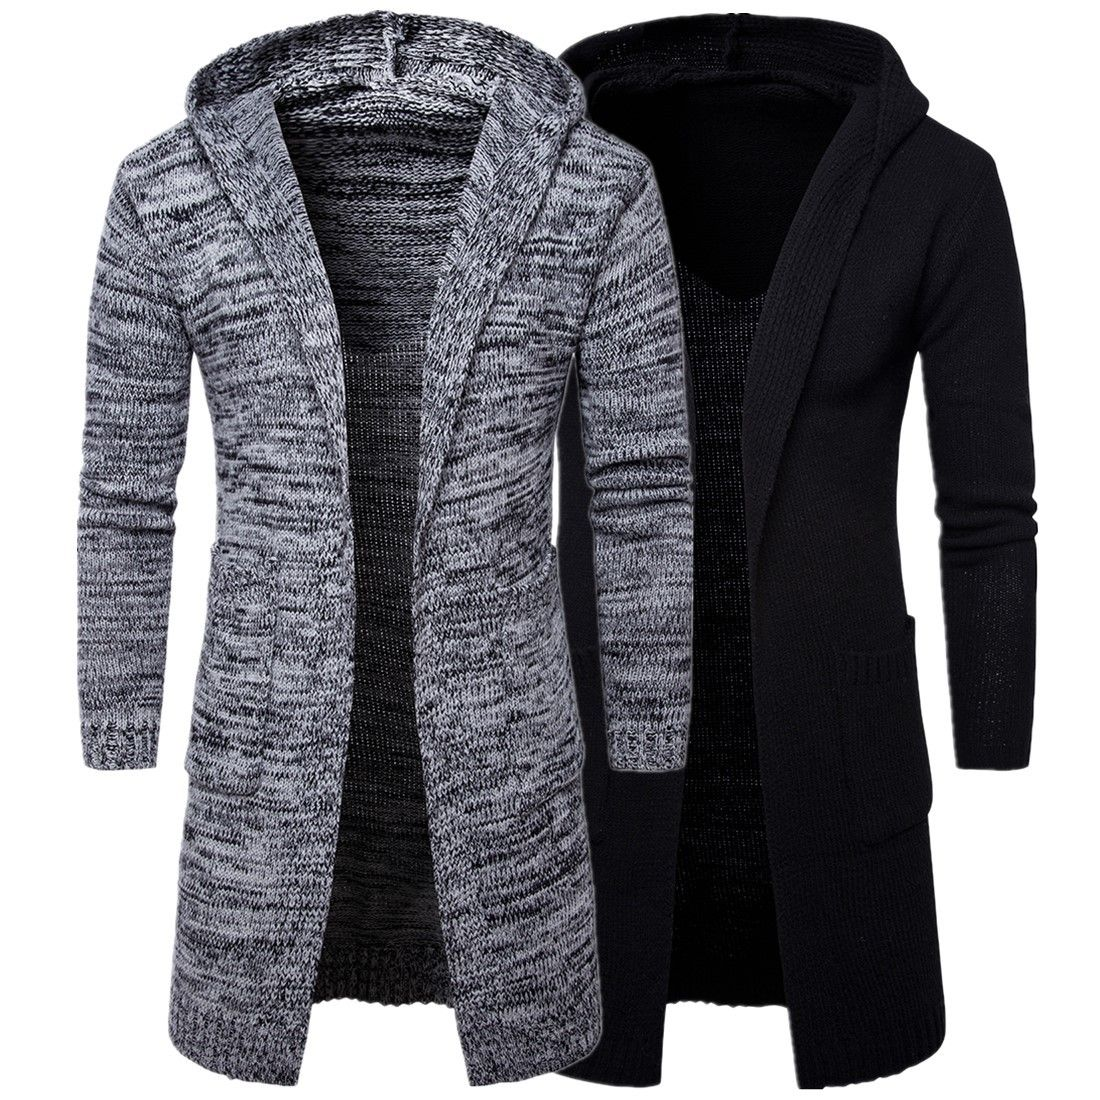 Men's Classic Knitted Hooded Cardigan | Mens cardigan